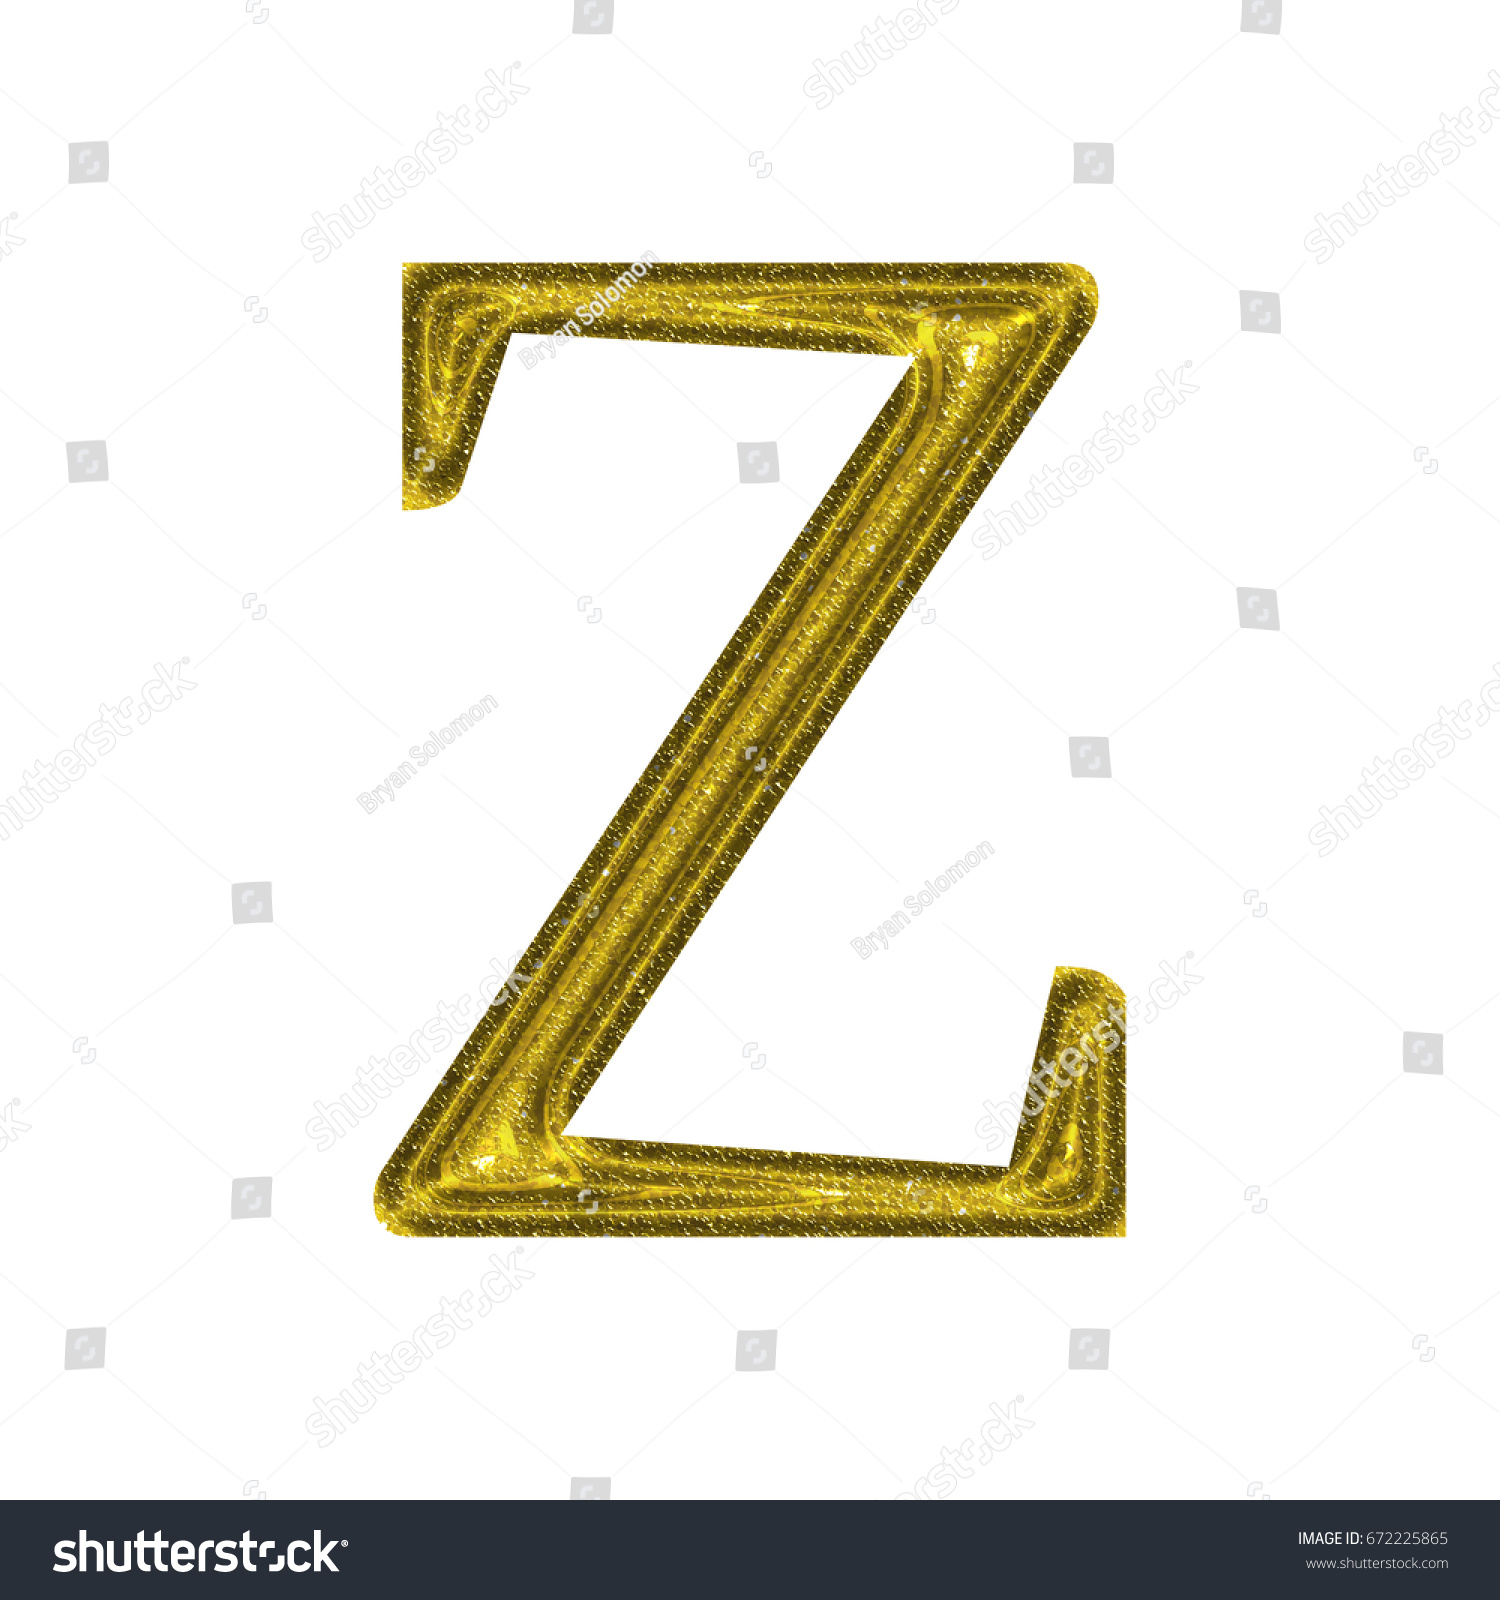 Glittery Yellow Gold Color Uppercase Or Capital Letter Z In A 3d